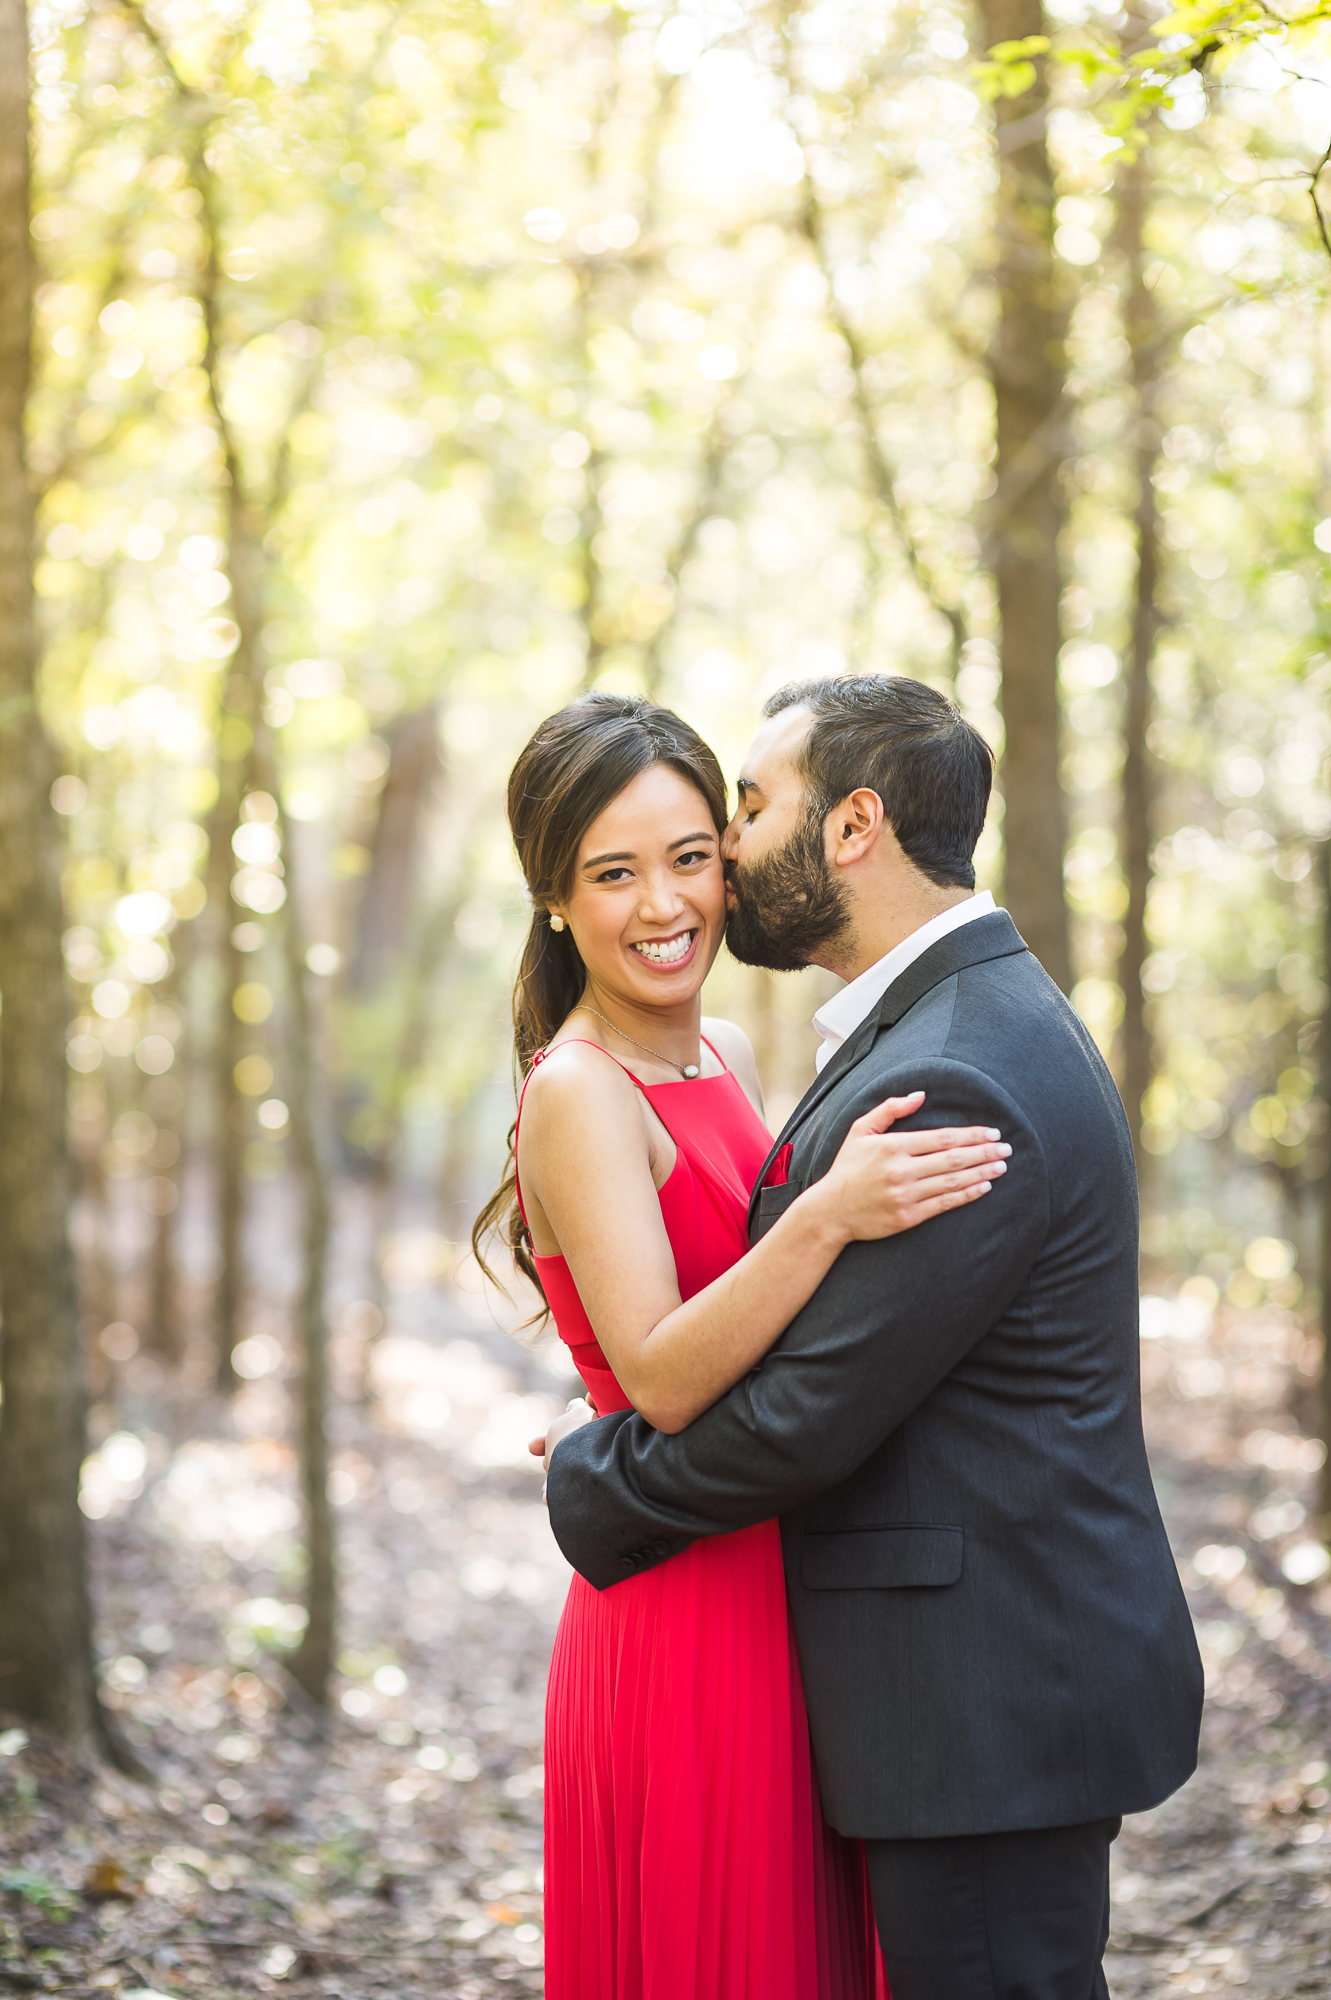 5-David Loi Studios - Mckinney Texas - Arbor Hills - Engagement Session-12882 - Copy.jpg